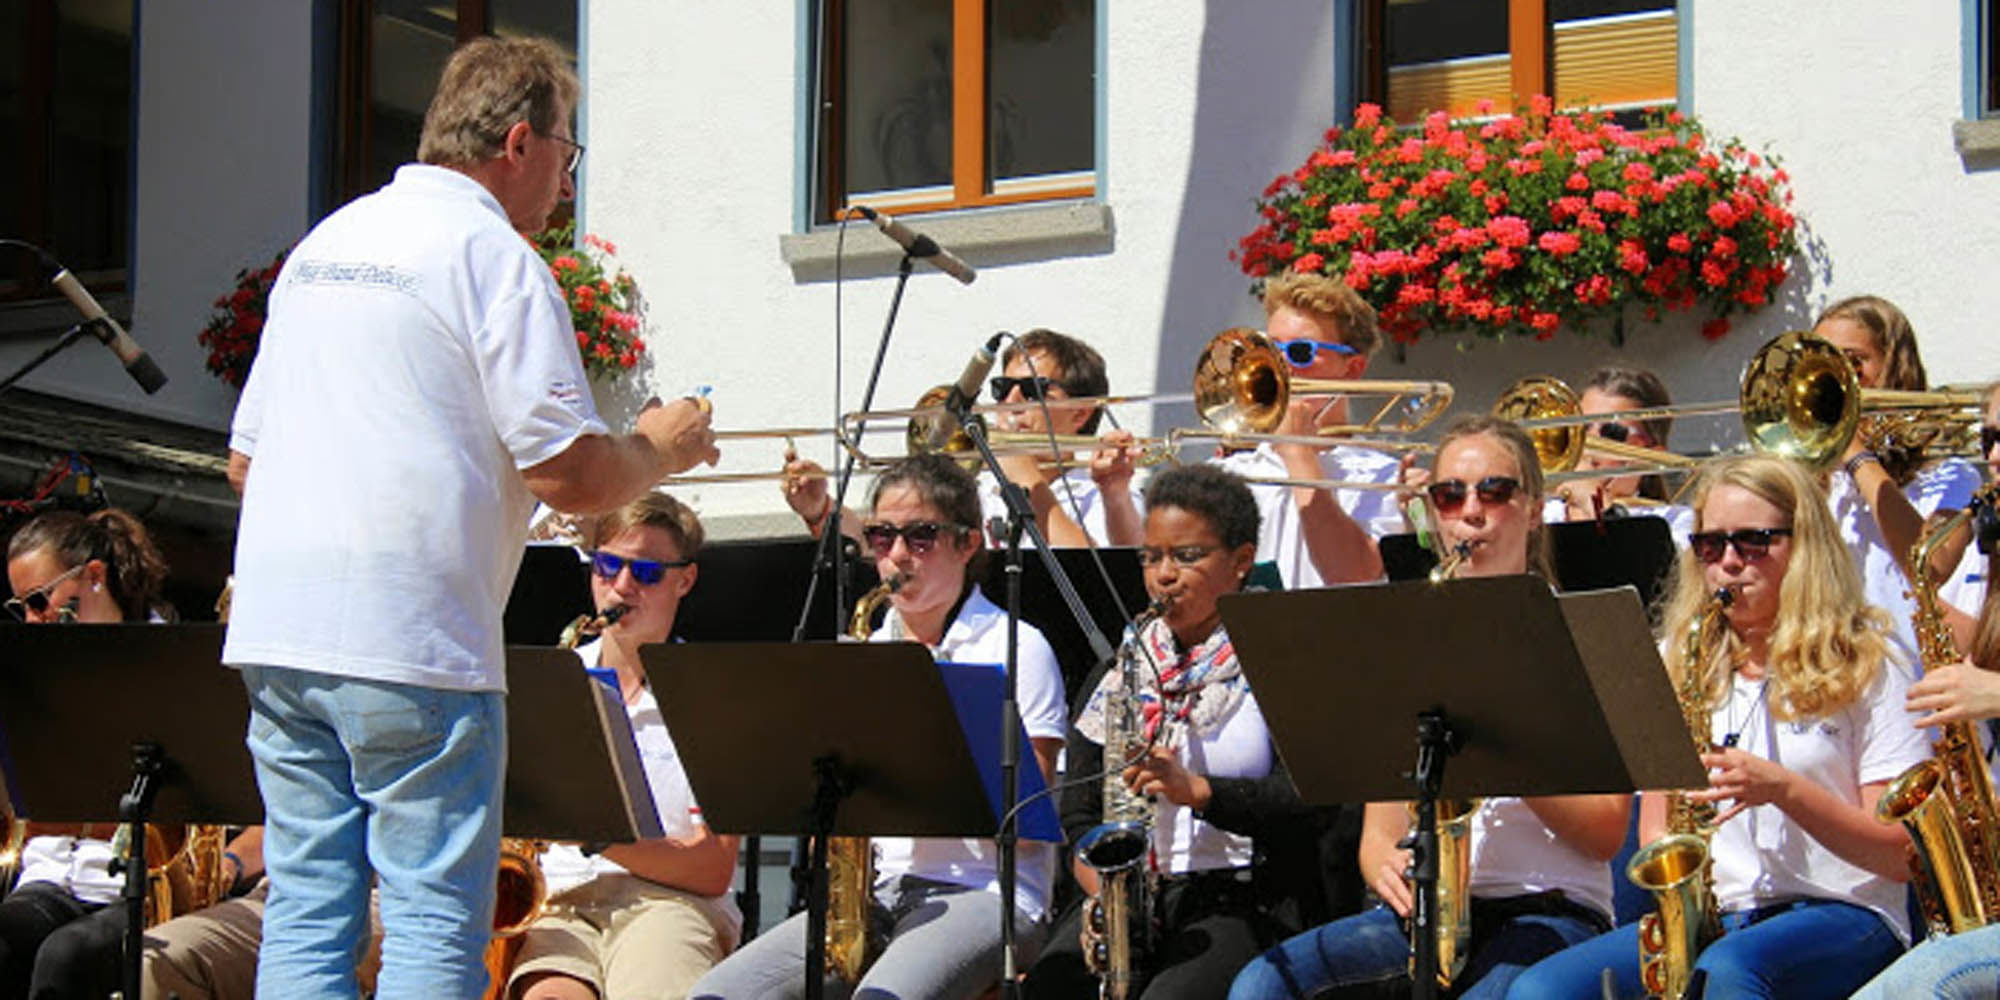 Events in the Free Republic of Holidays Saas-Fee